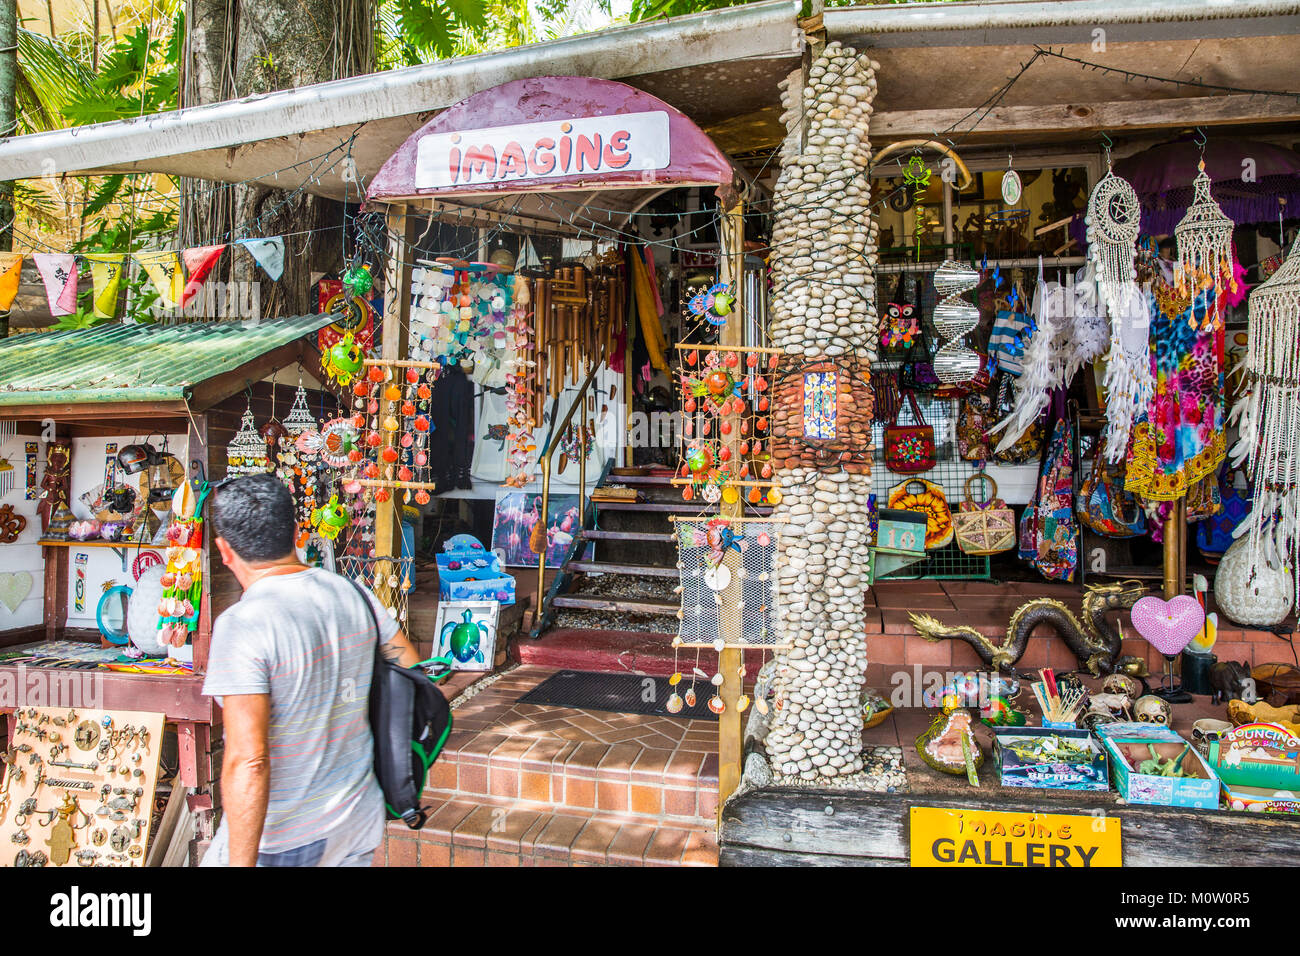 General store on macrossman street in Port Douglas selling a range of eclectic goods and bric a brac, Port Douglas,Queensland - Stock Image